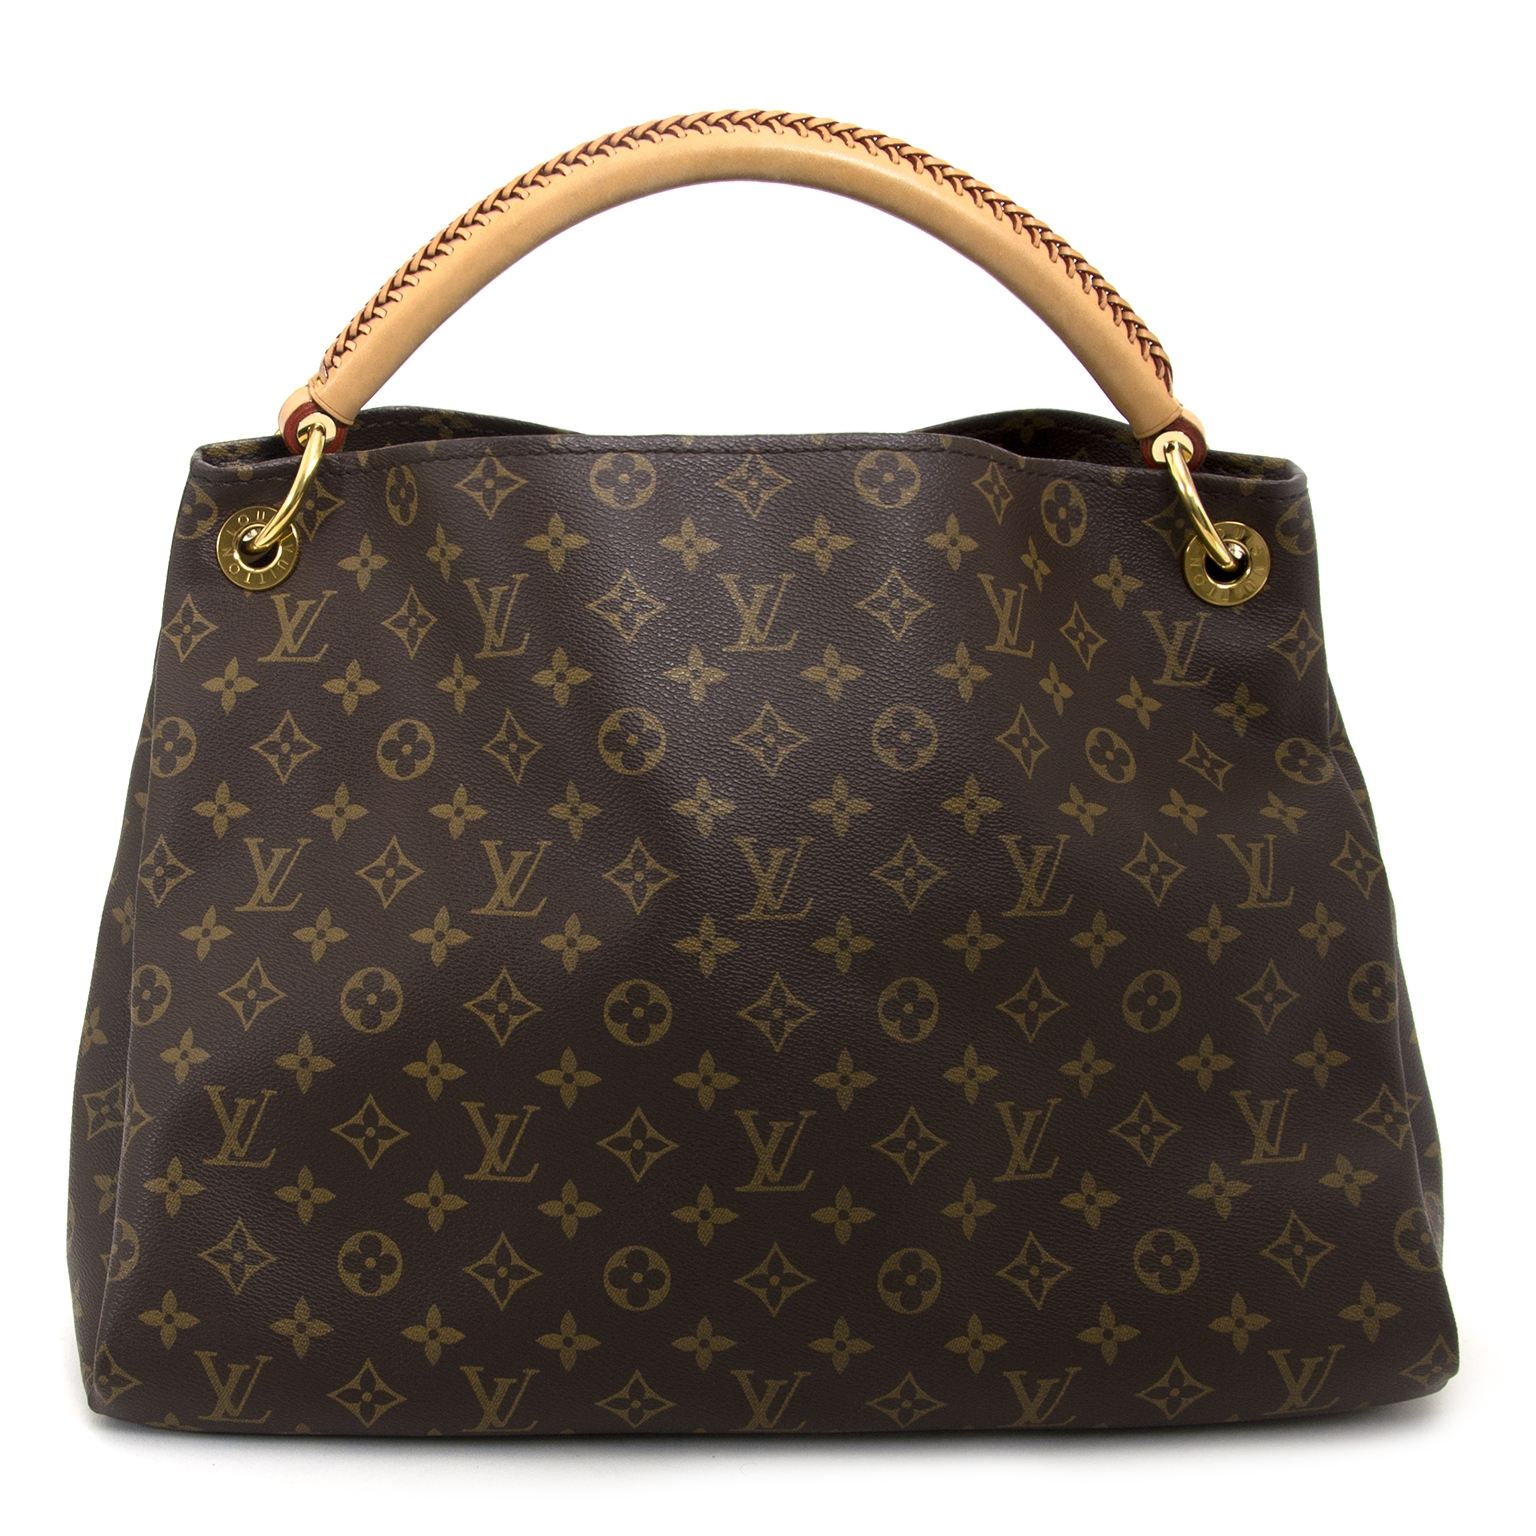 38c85fb1ff84 ... buy Louis Vuitton Monogram Artsy MM and pay save online at labellov.com